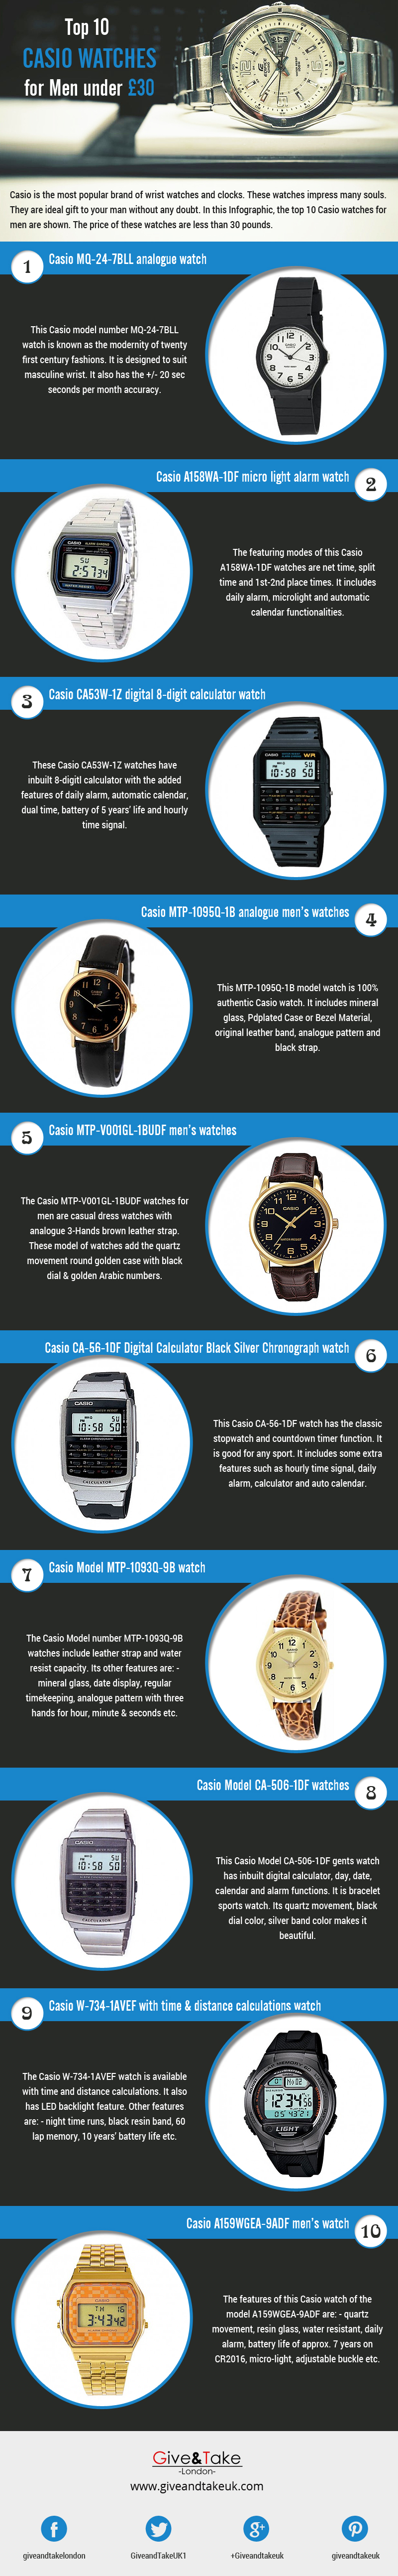 Top 10 Casio Watches for Men under £30 [Infographic]